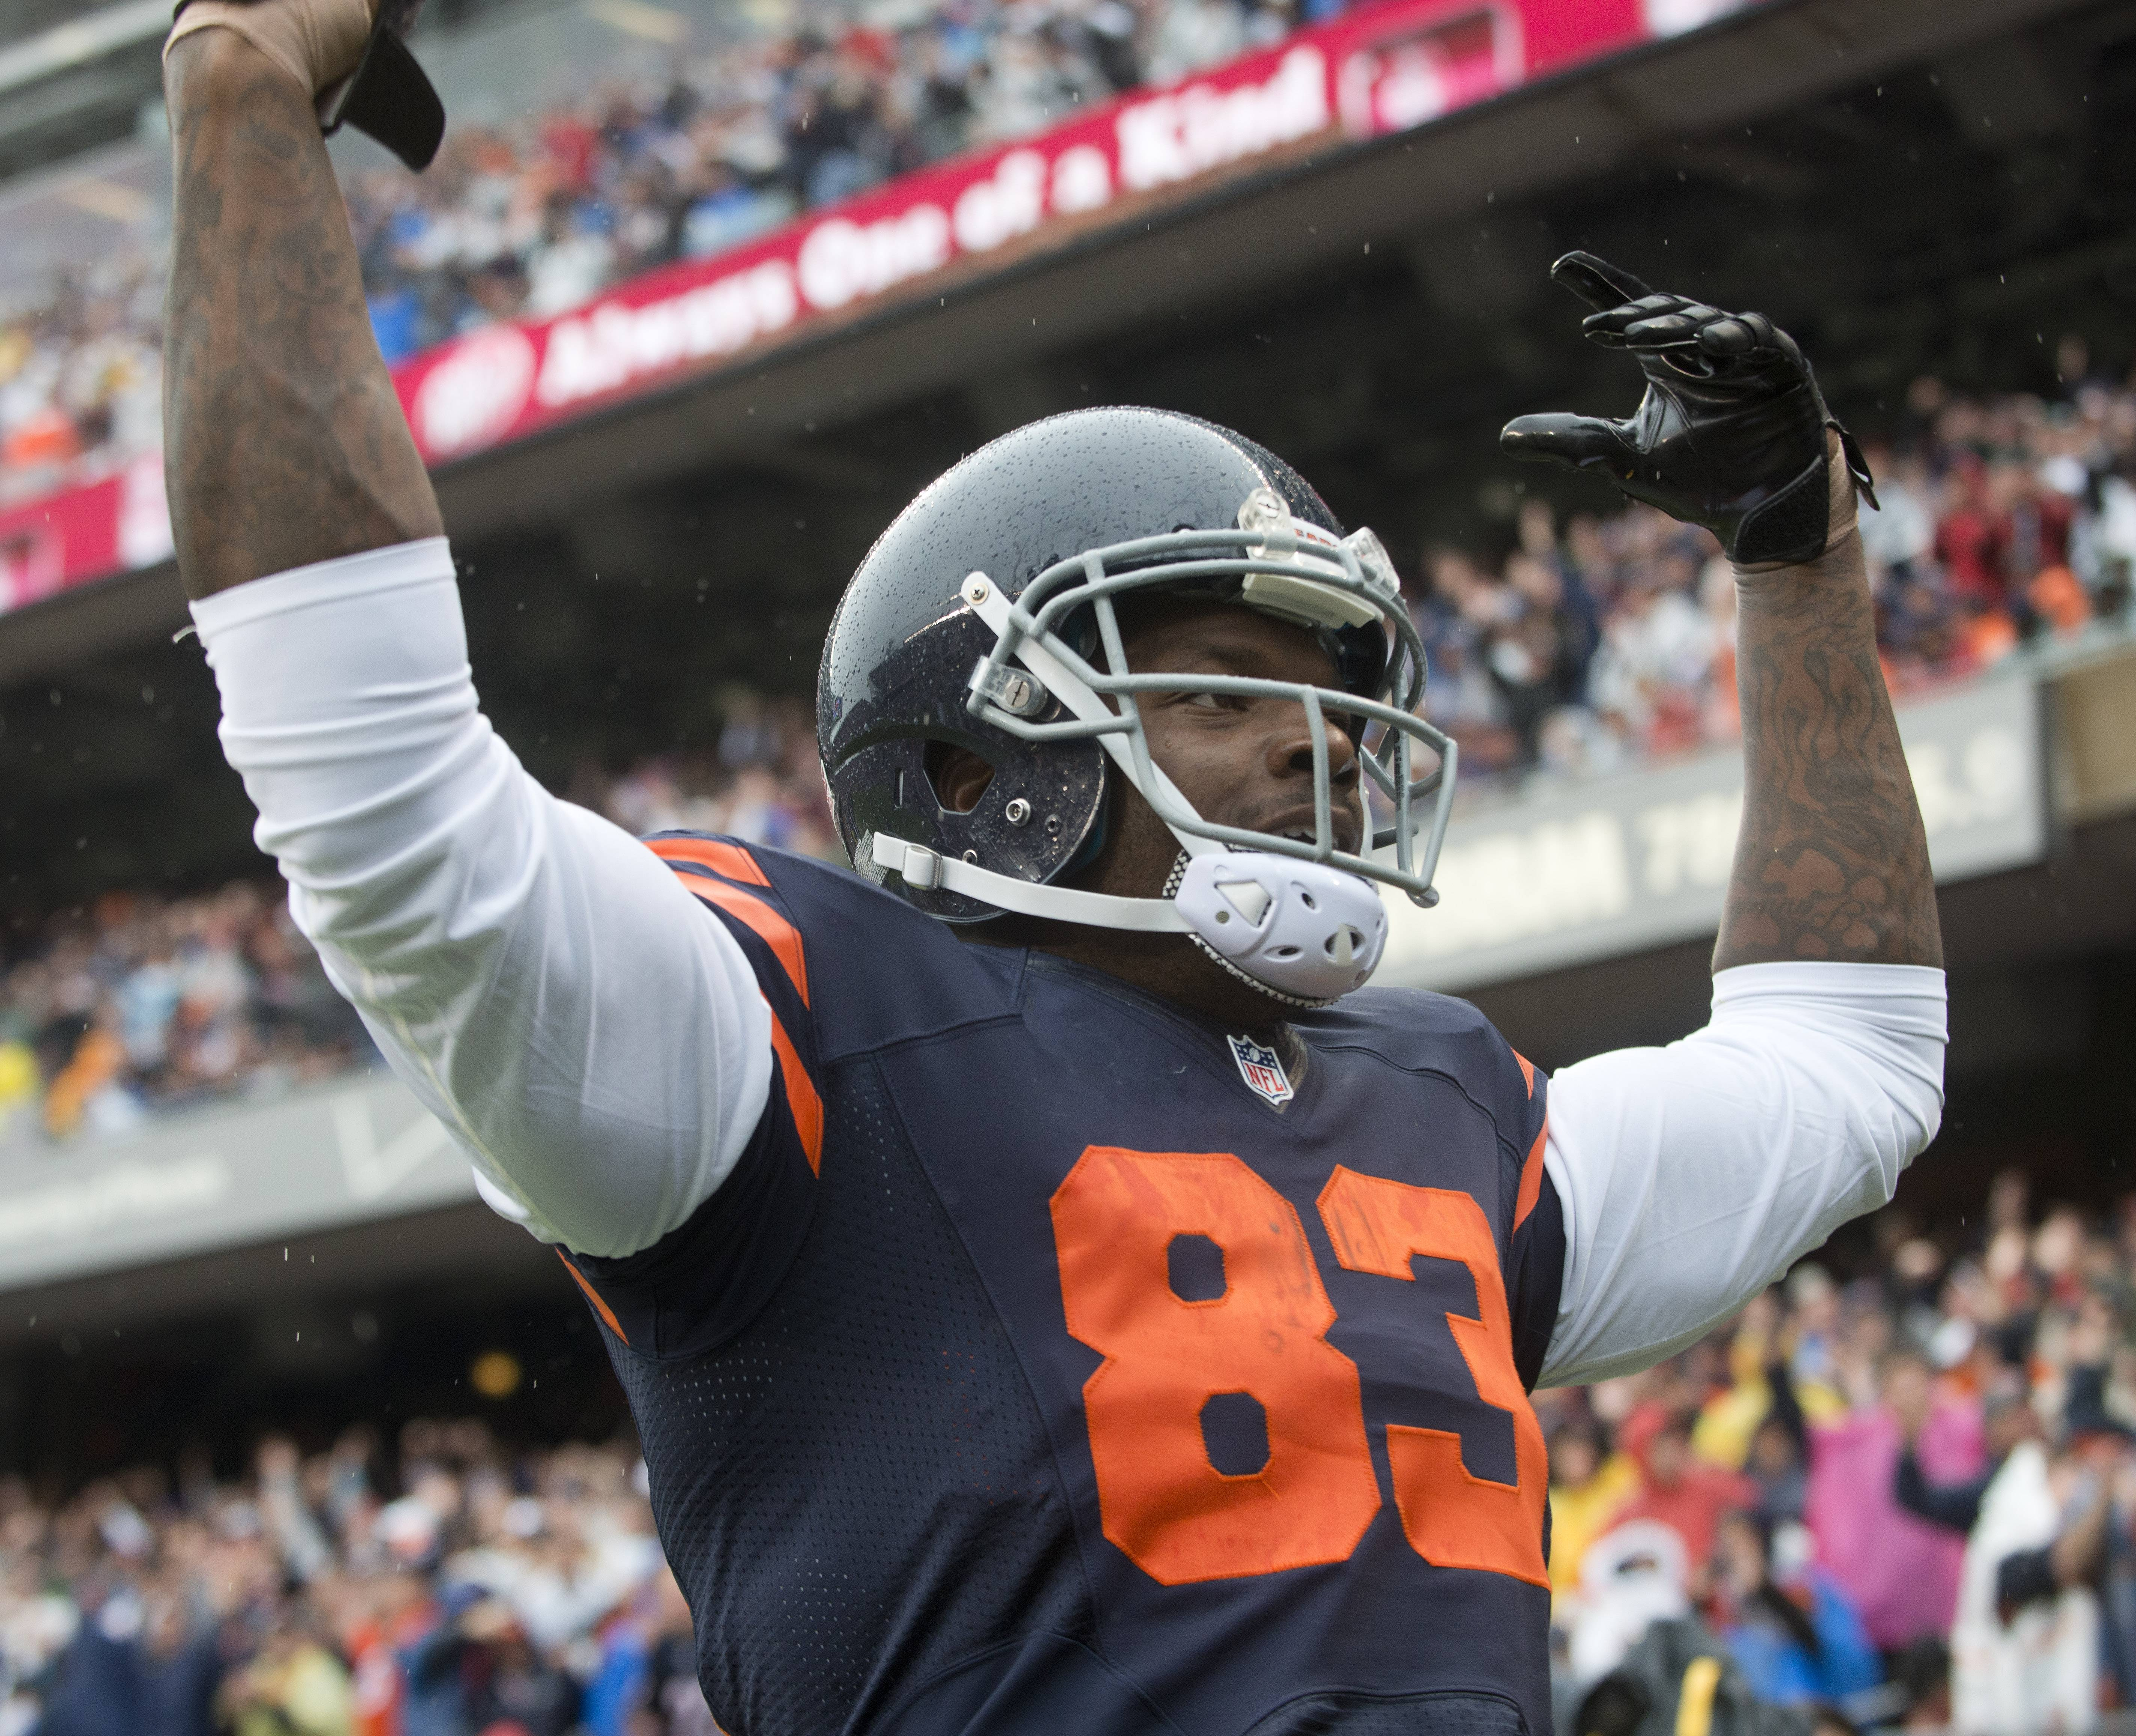 Tight end Martellus Bennett is back with the Bears, who suspended him last week. Bennett said he was greeted by his teammates with hugs and high-fives.